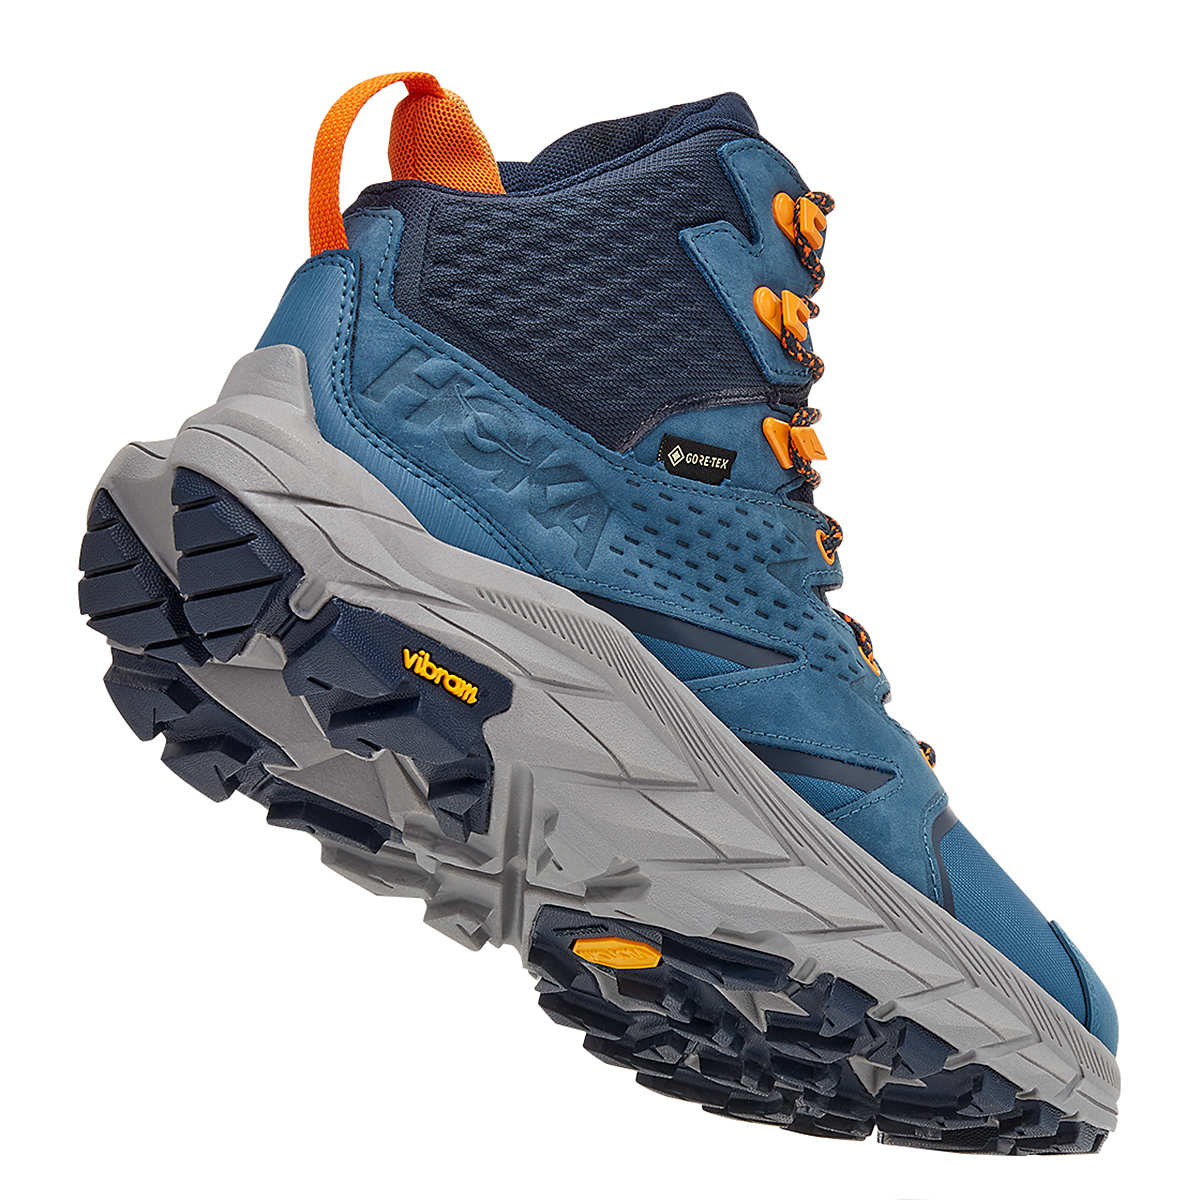 Men's Hoka One One Anacapa Mid Gore-Tex Trail Running Shoe - Color: Real Teal/Outer Space - Size: 7 - Width: Regular, Real Teal/Outer Space, large, image 3